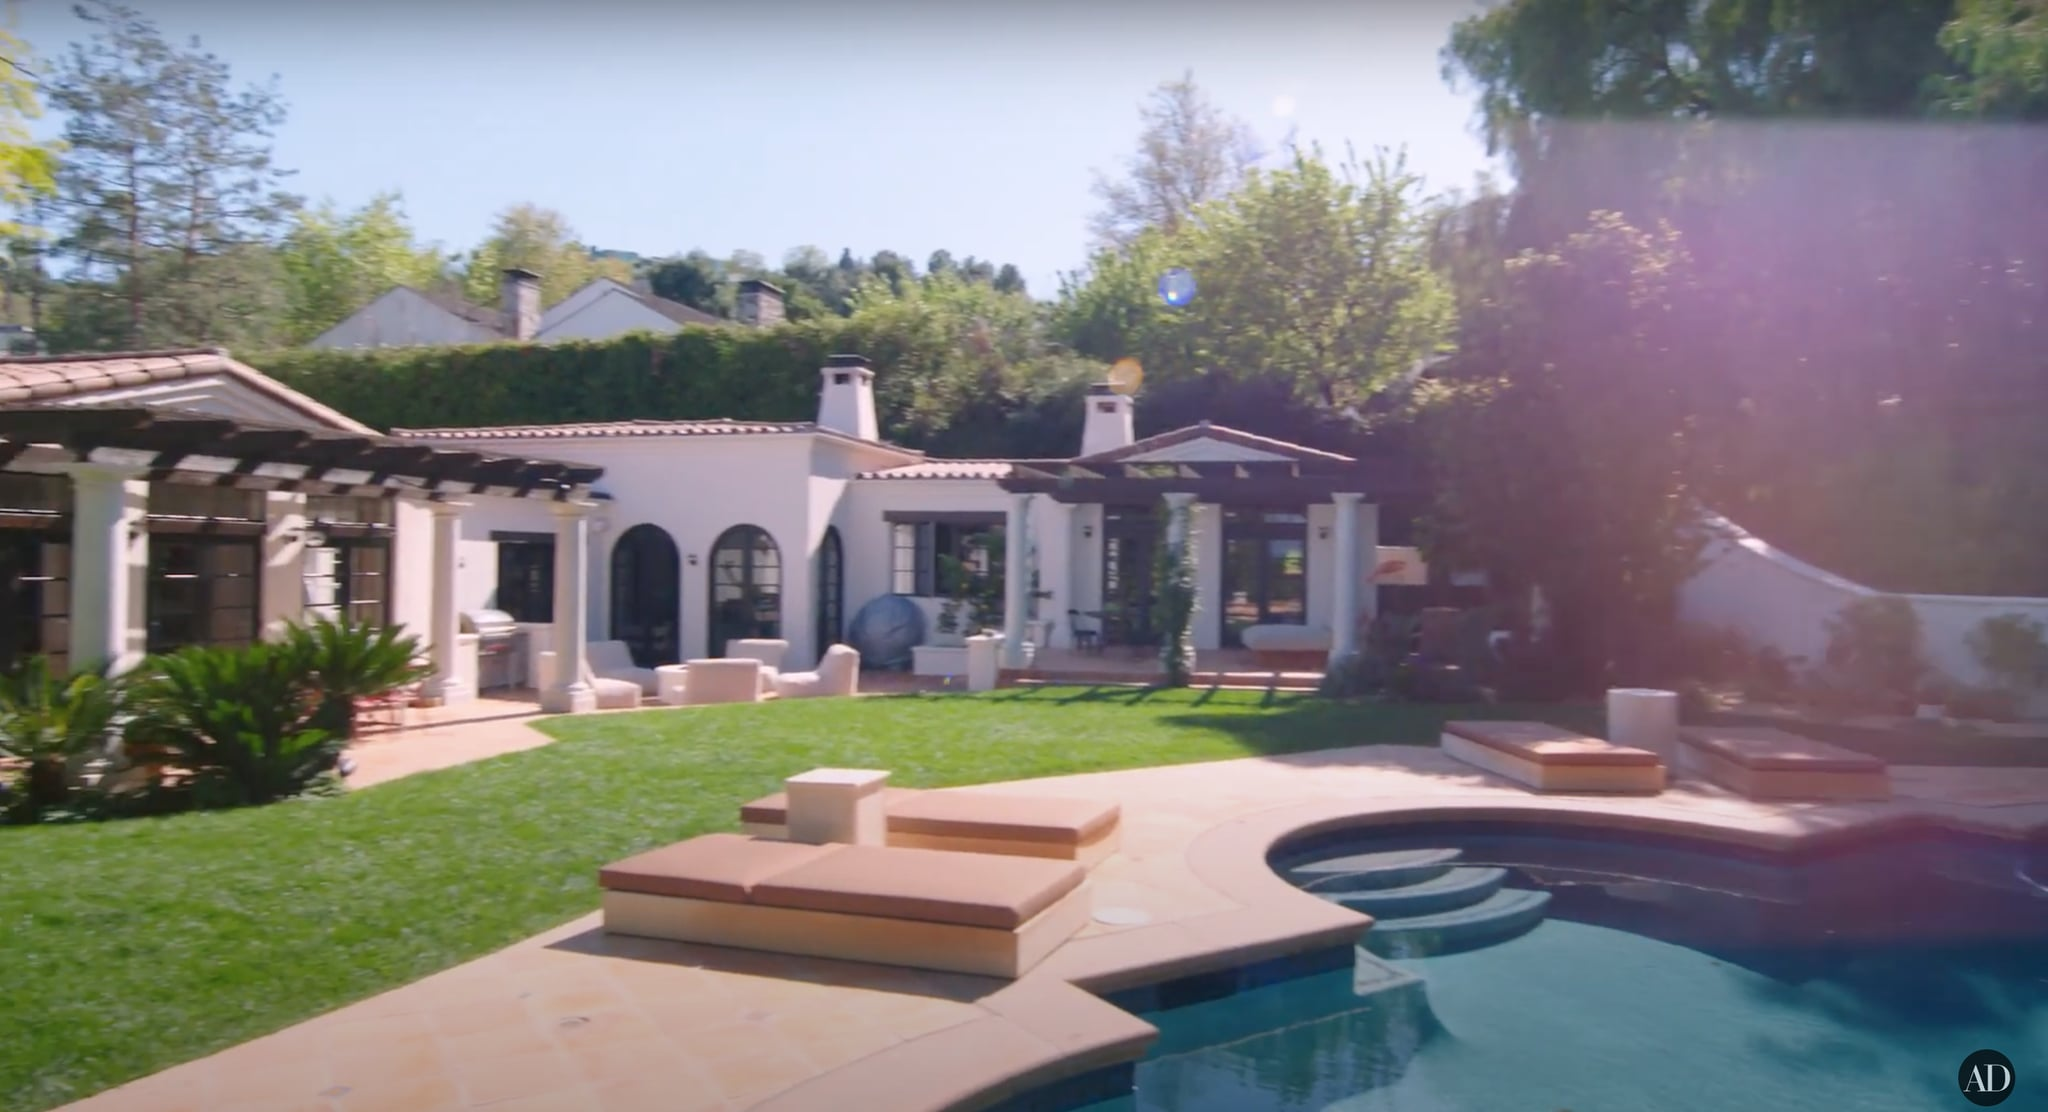 kendall-jenner-los-angeles-home-house-architectural-digest-style-rave